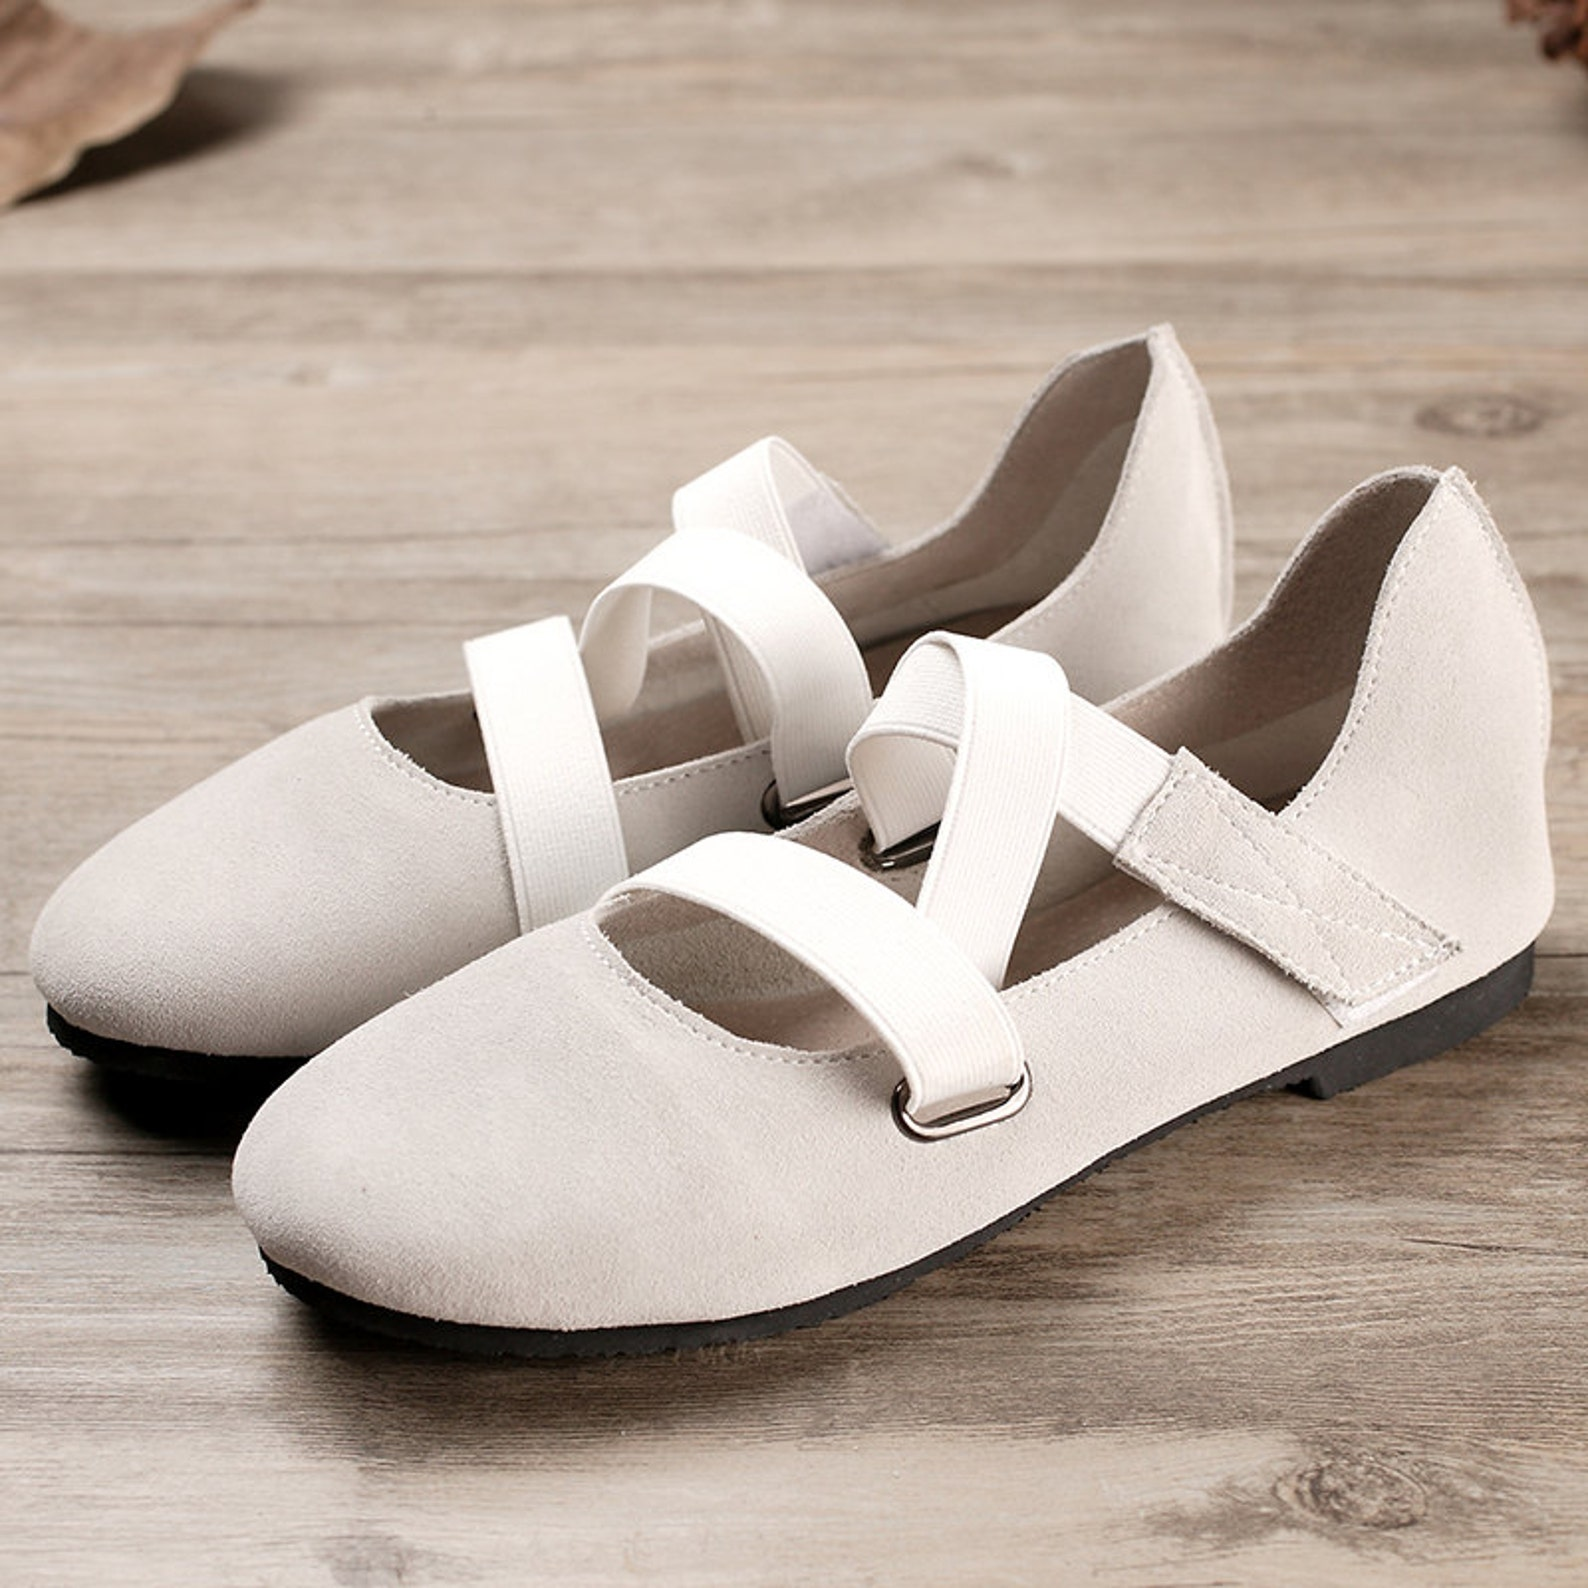 grey handmade ballet shoes,oxford women shoes, flat leather shoes, retro soft leather shoes, casual shoes